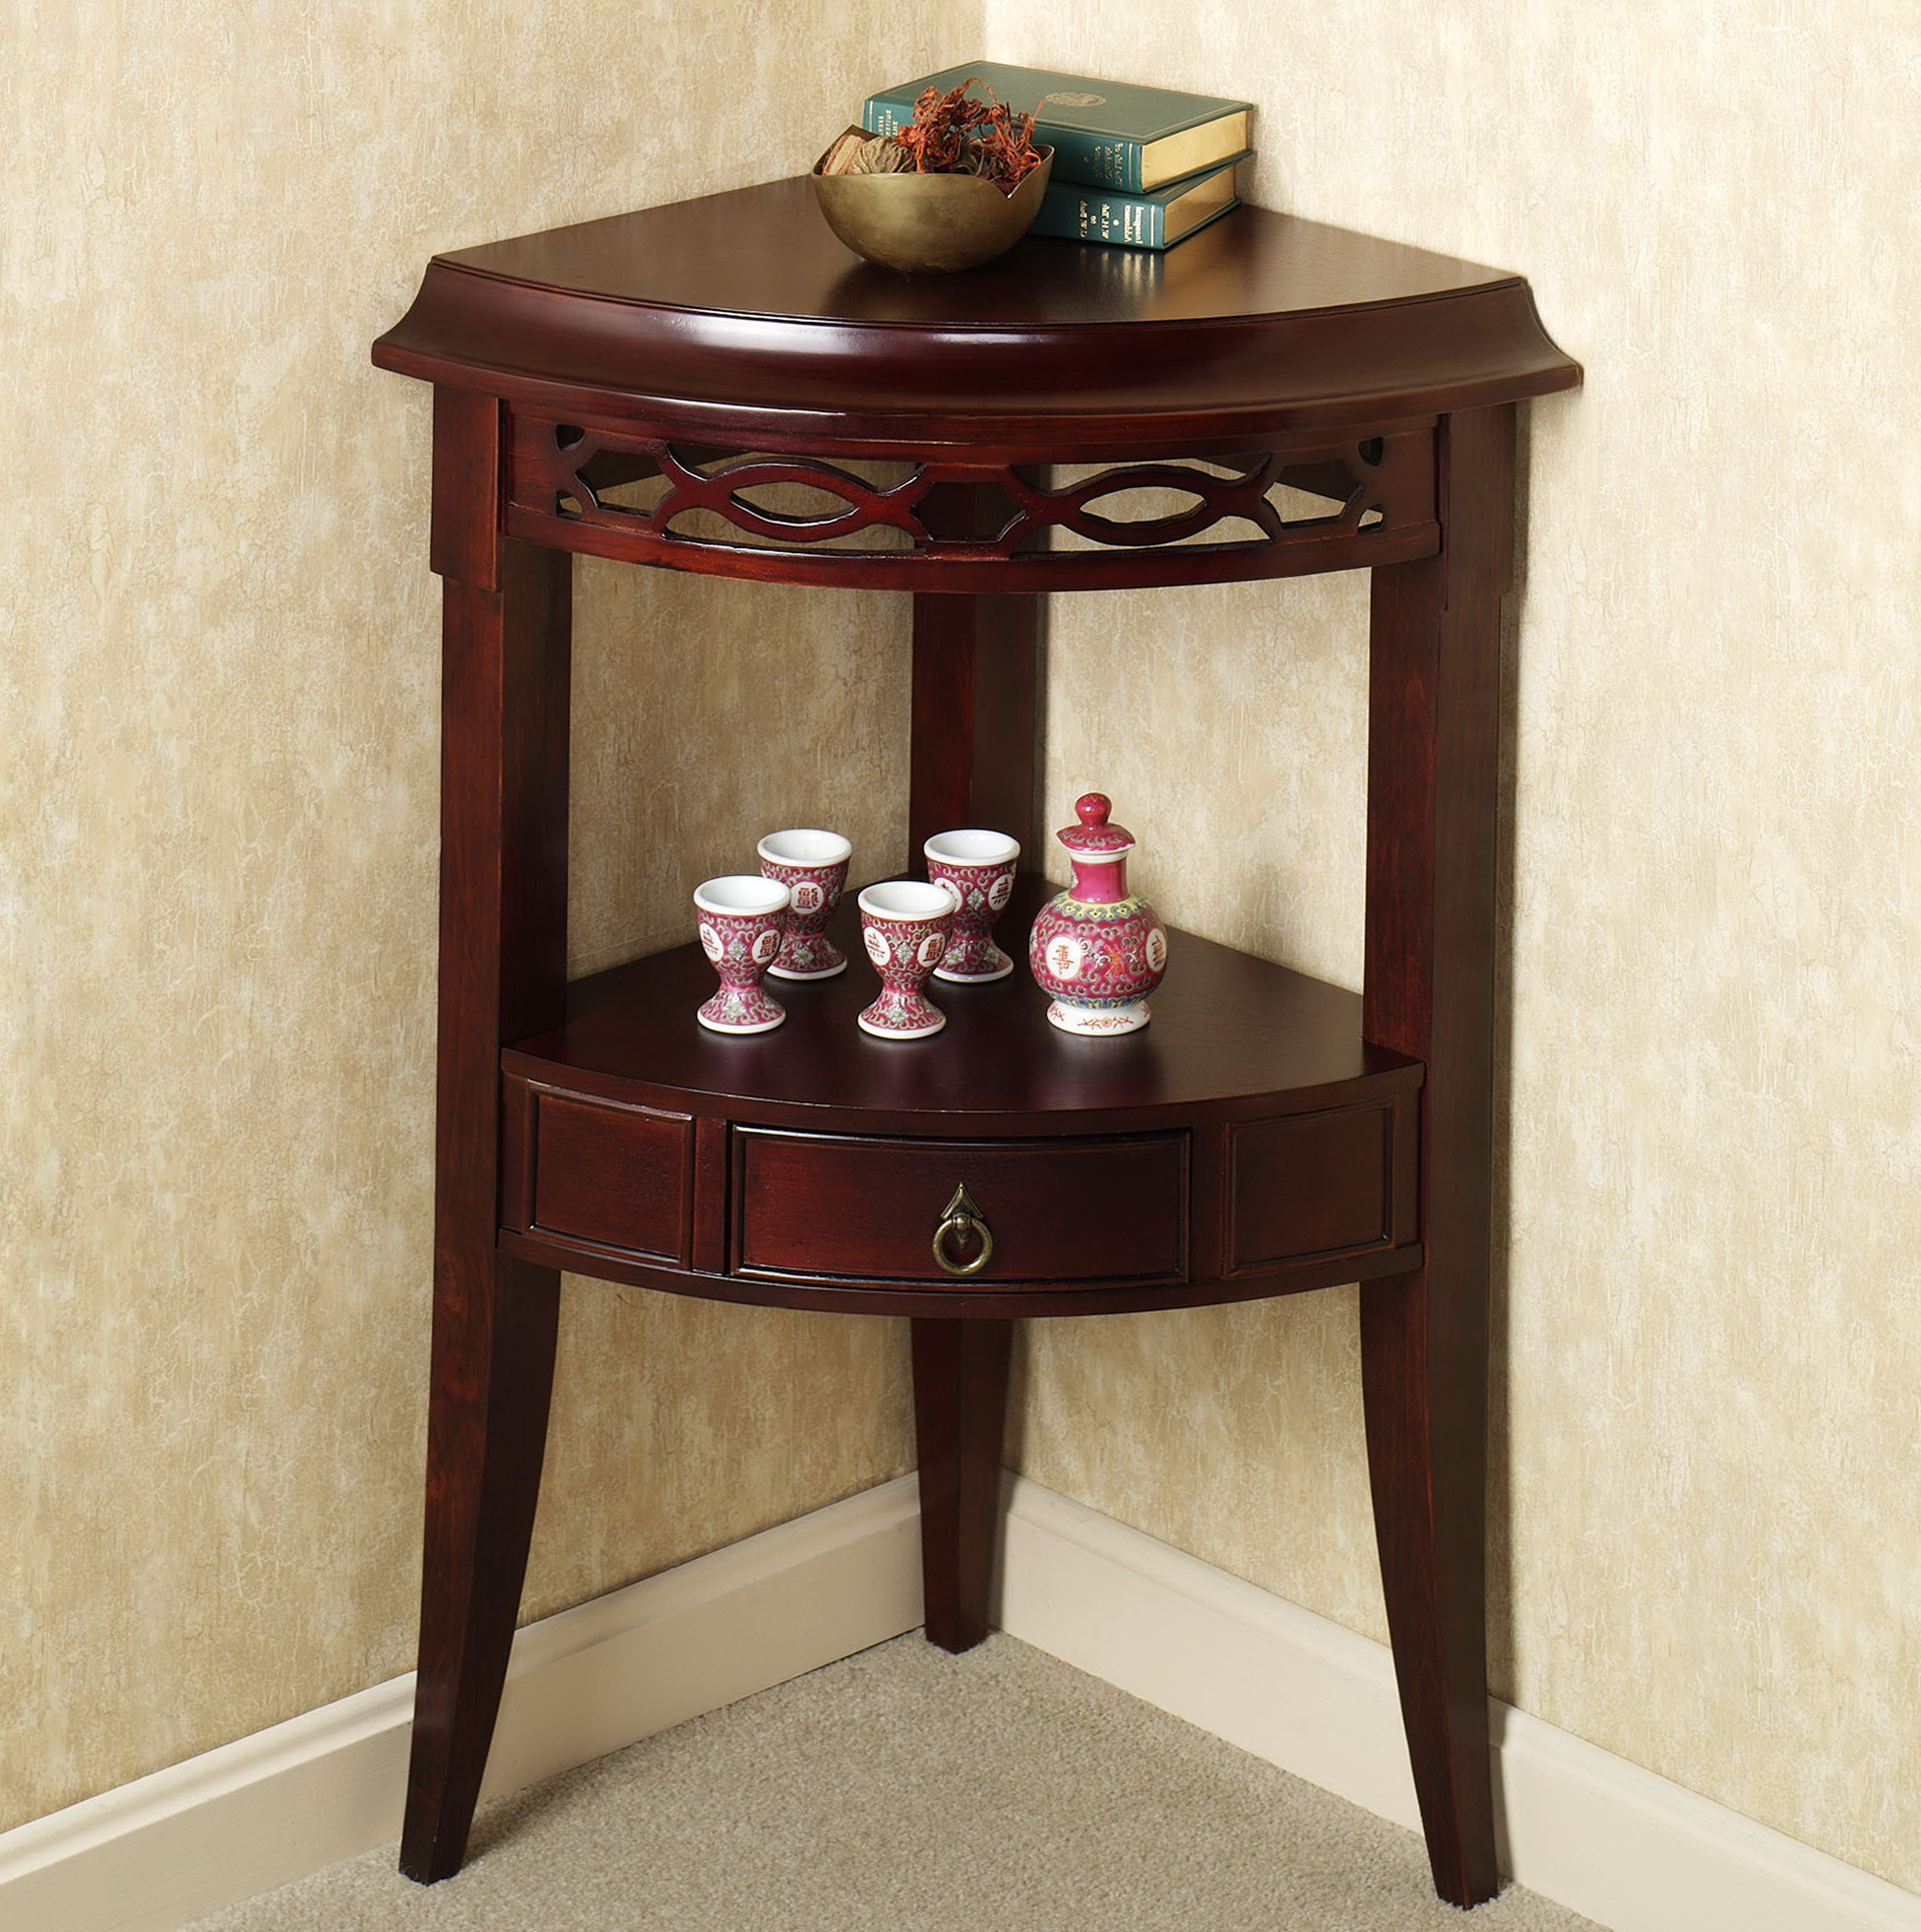 design small corner accent table with attractive bathroom tables long narrow legion furniture cupboard mirror cherry wood end painted crystal desk lamp pier one dining bench